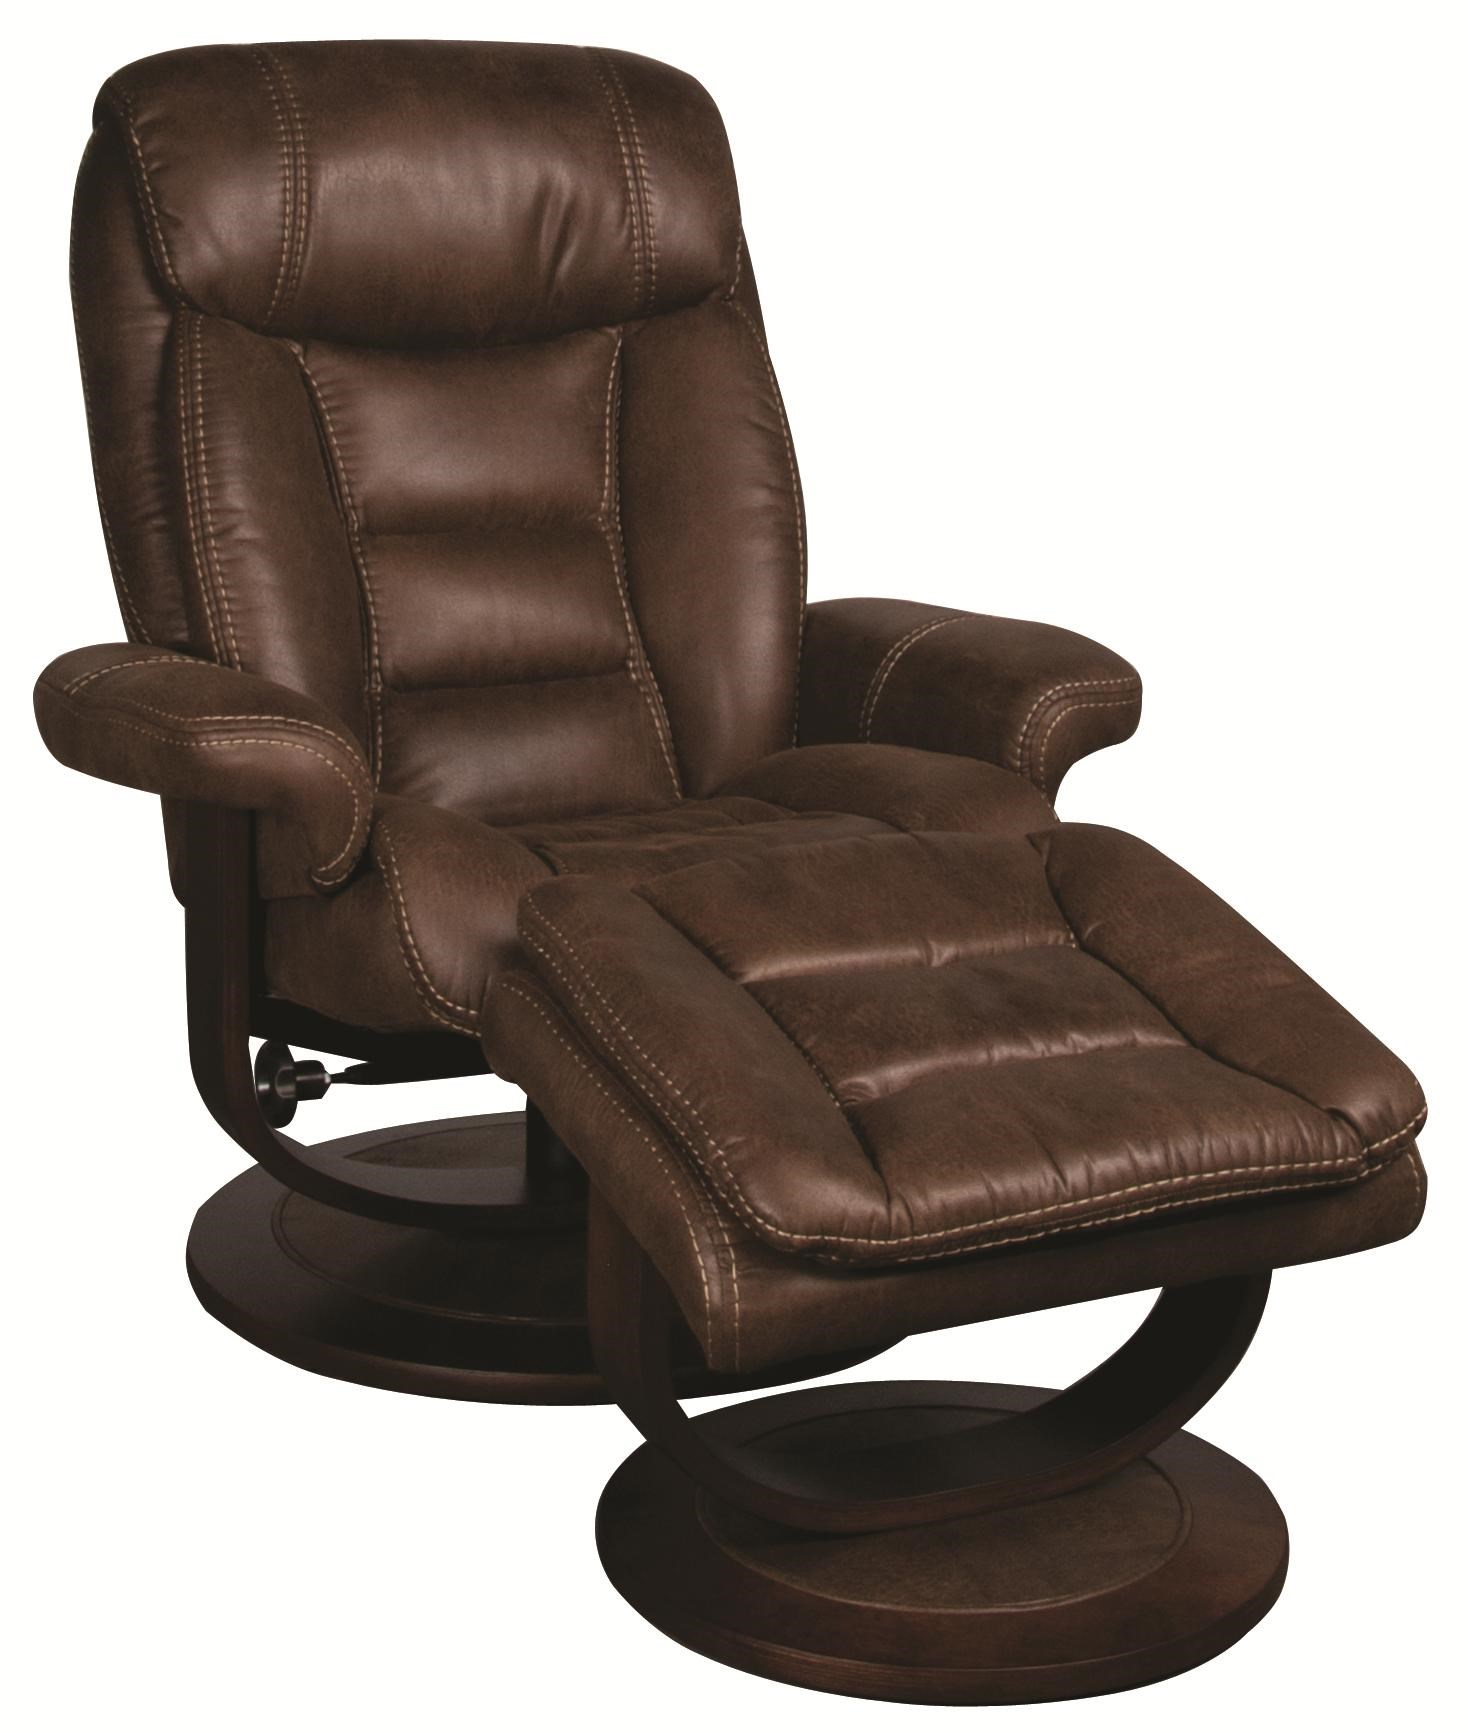 Swivel Recliner Chairs Manuel Manuel Swivel Recliner With Ottoman By Morris Home At Morris Home